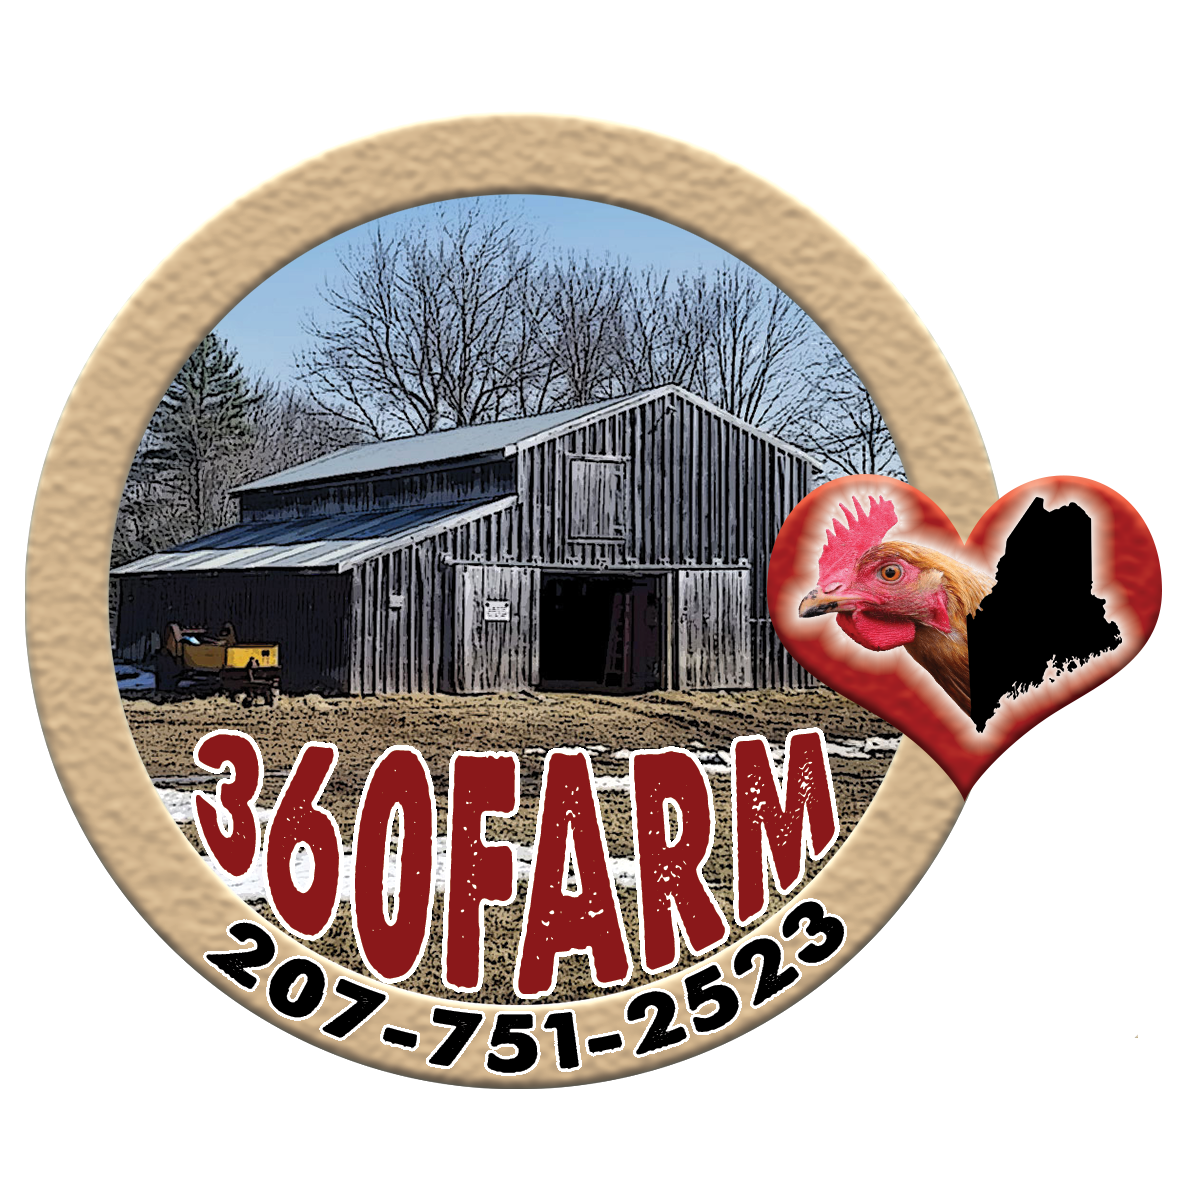 360Farm – High Quality, Farm Fresh Maine Chicken Eggs and Fryer Chickens for Sale!